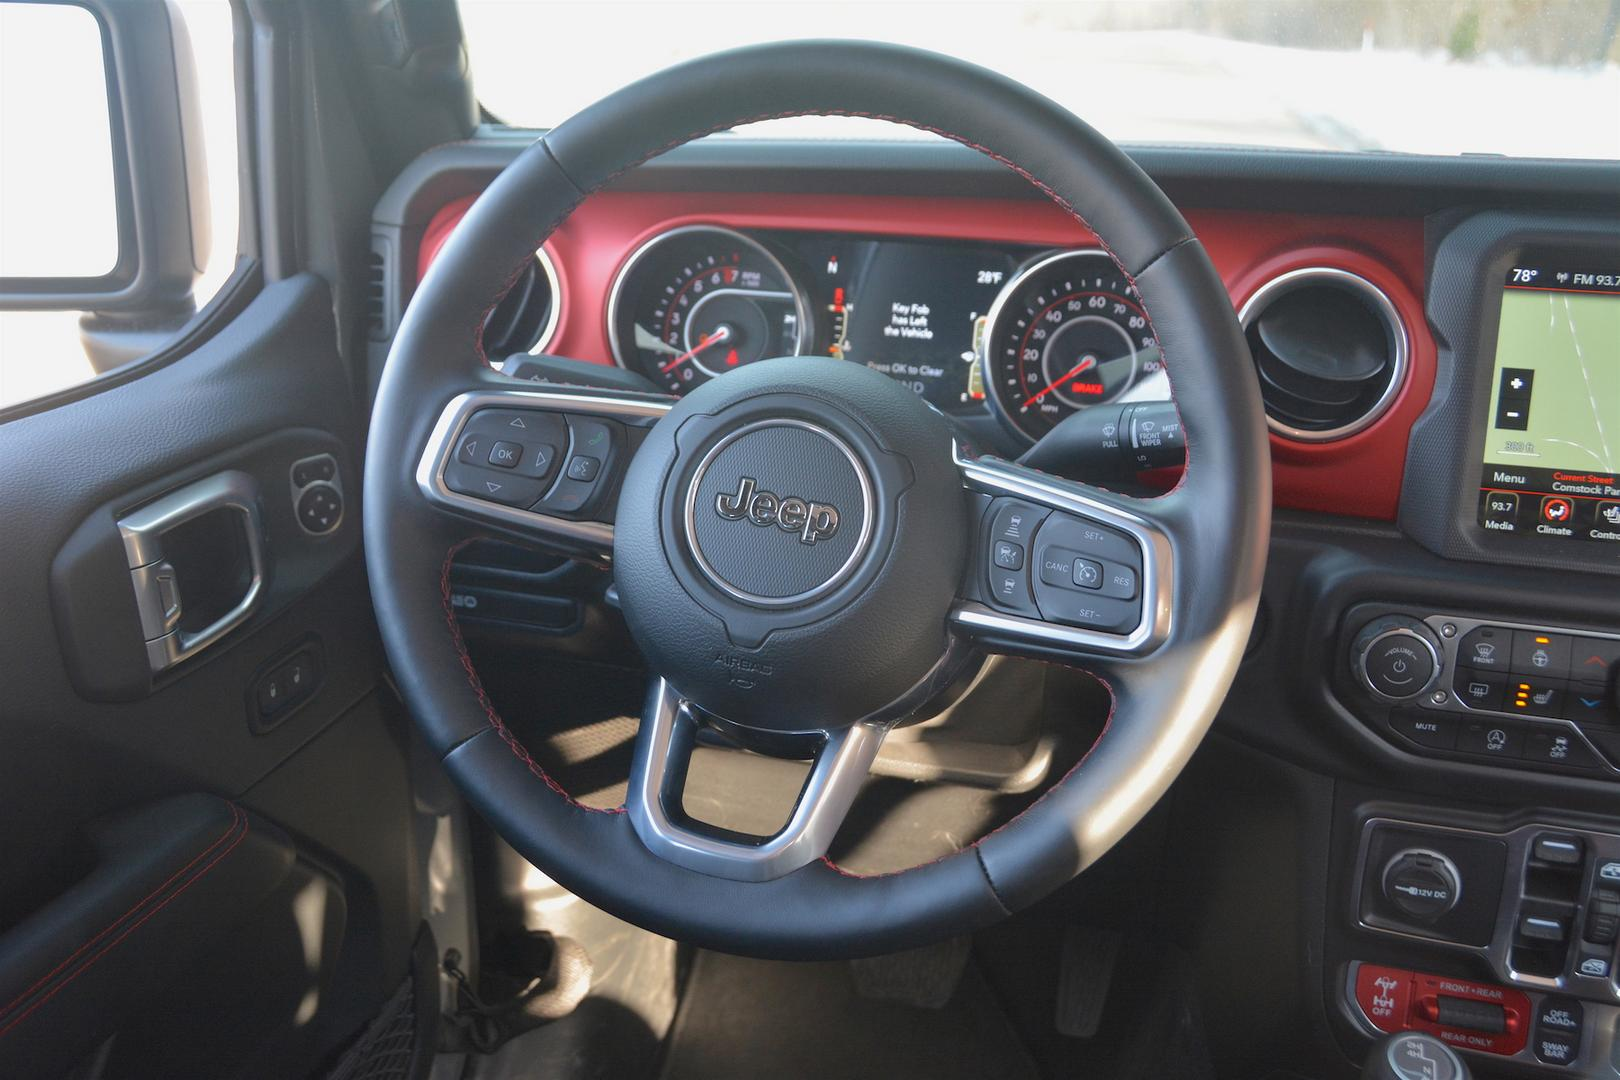 2020 Jeep Gladiator Rubicon Steering Wheel